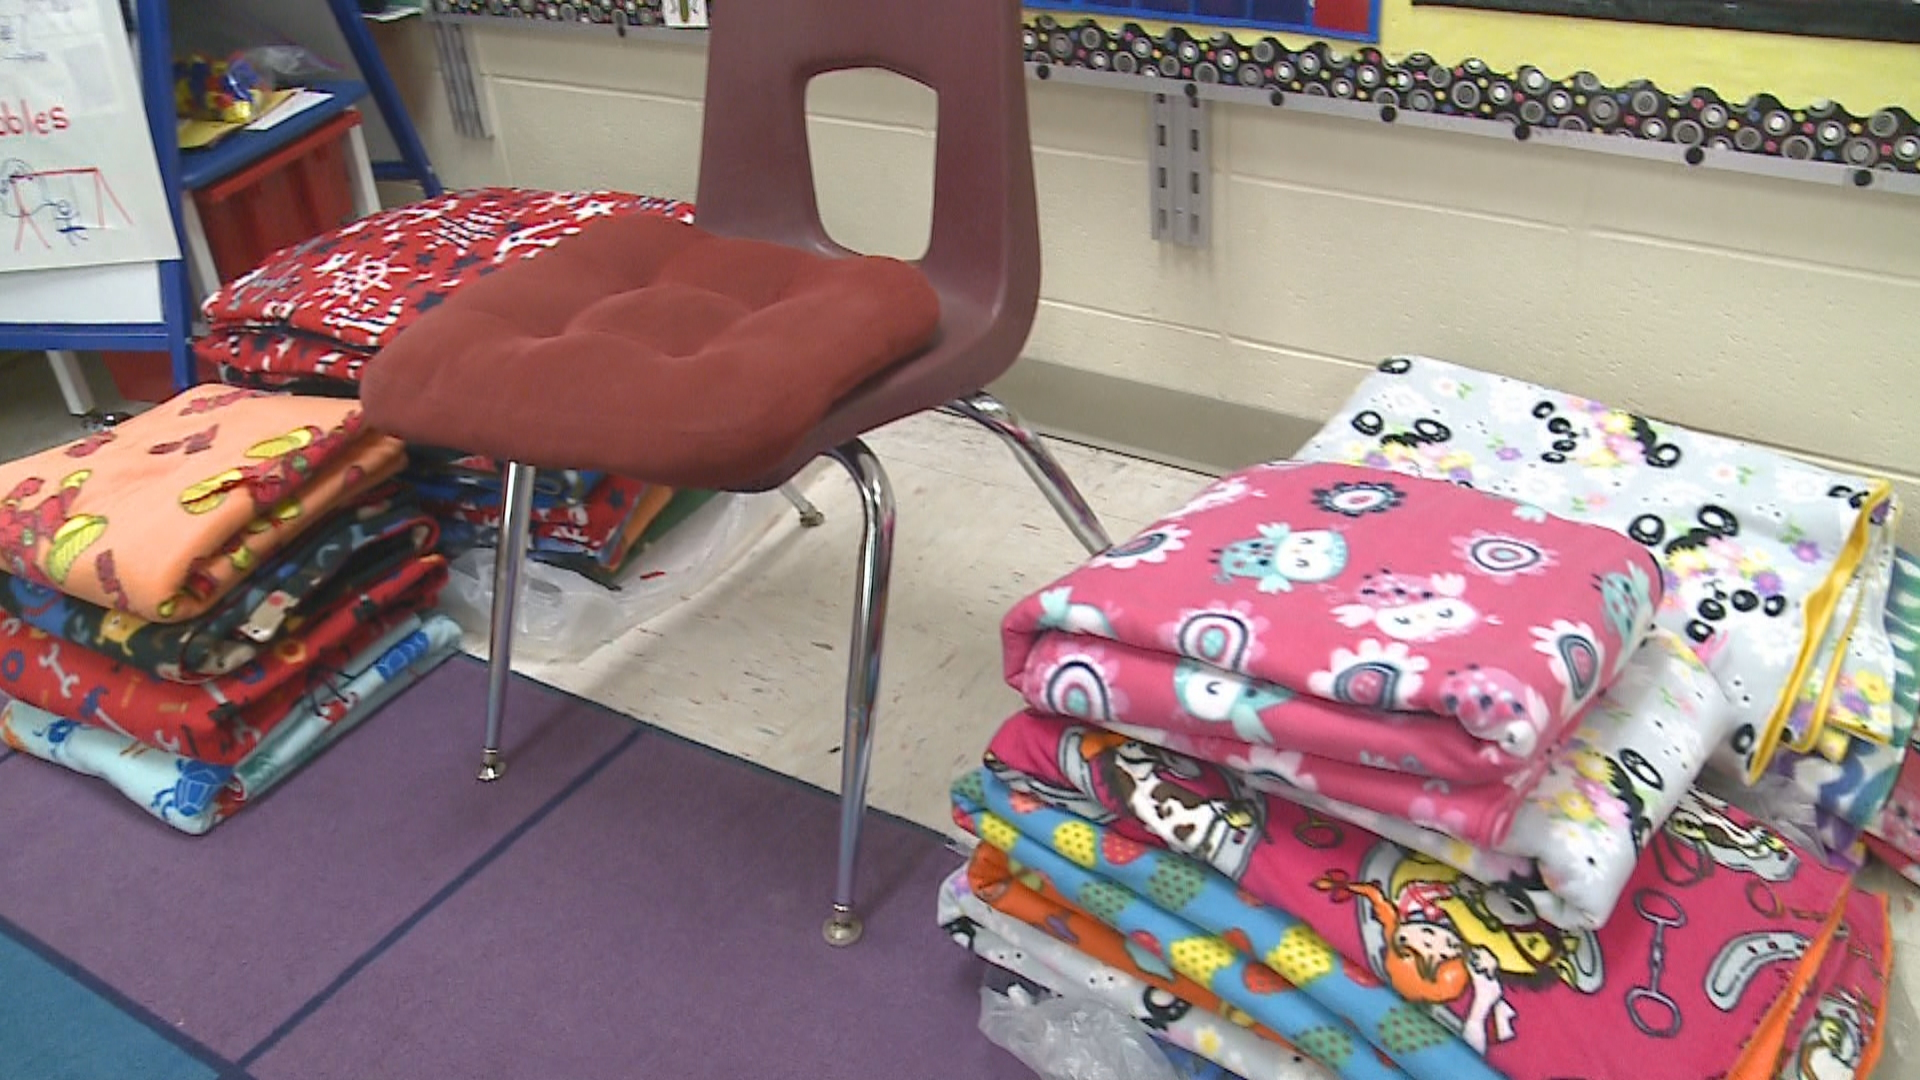 Grace Treml donated blankets she made to students at Howe Elementary School in Green Bay, January 3, 2018. (WLUK)